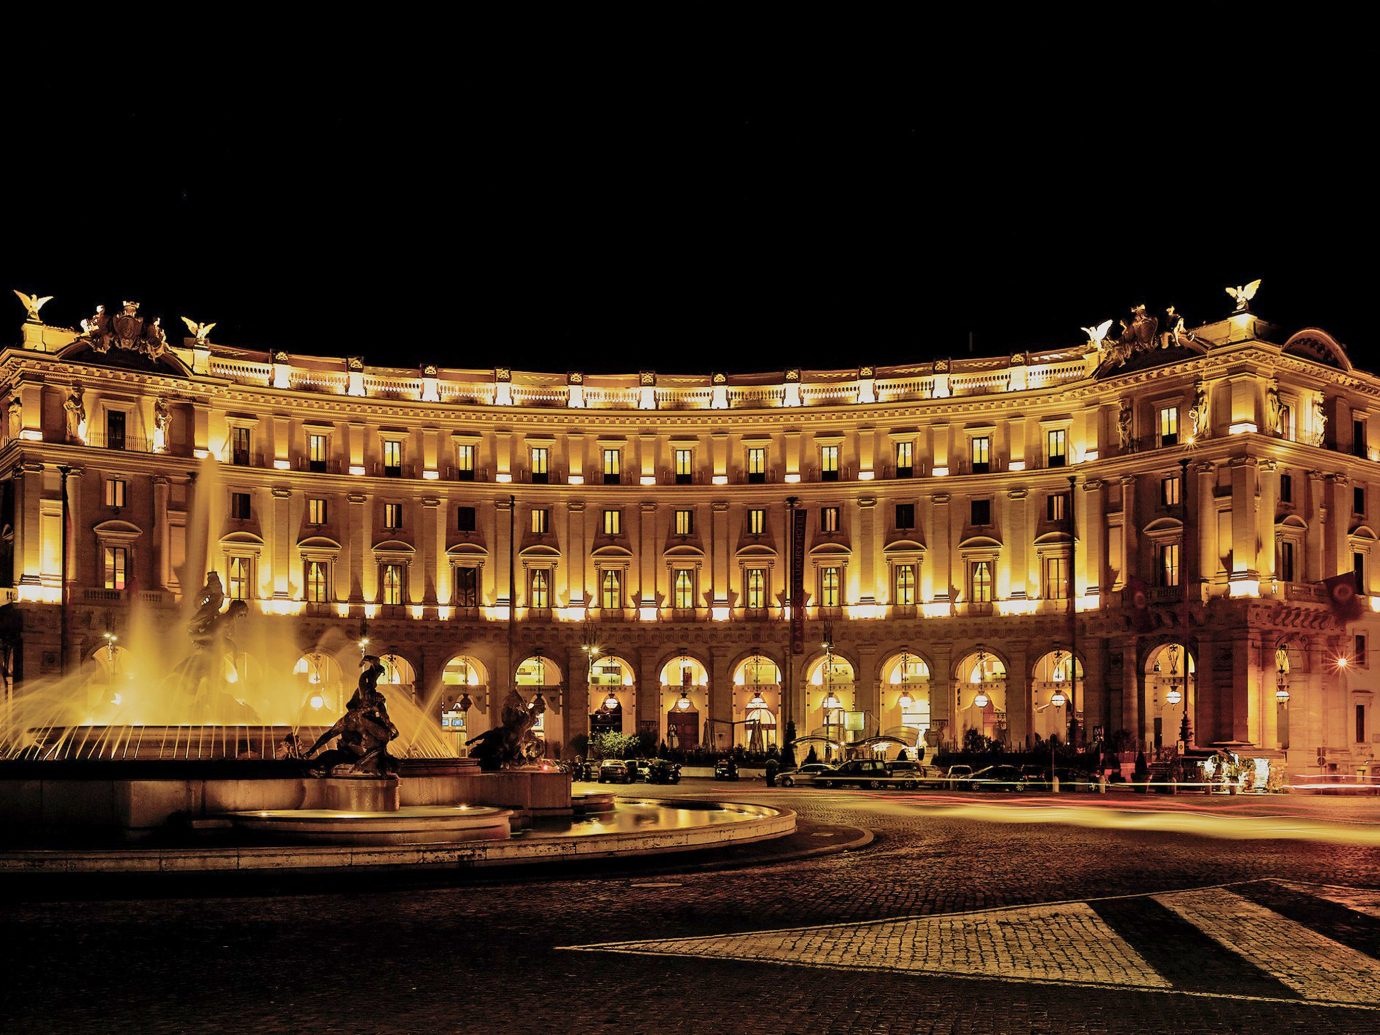 Boutique Hotels City Elegant Grounds Italy Luxury Travel Rome Night Landmark Lit Plaza